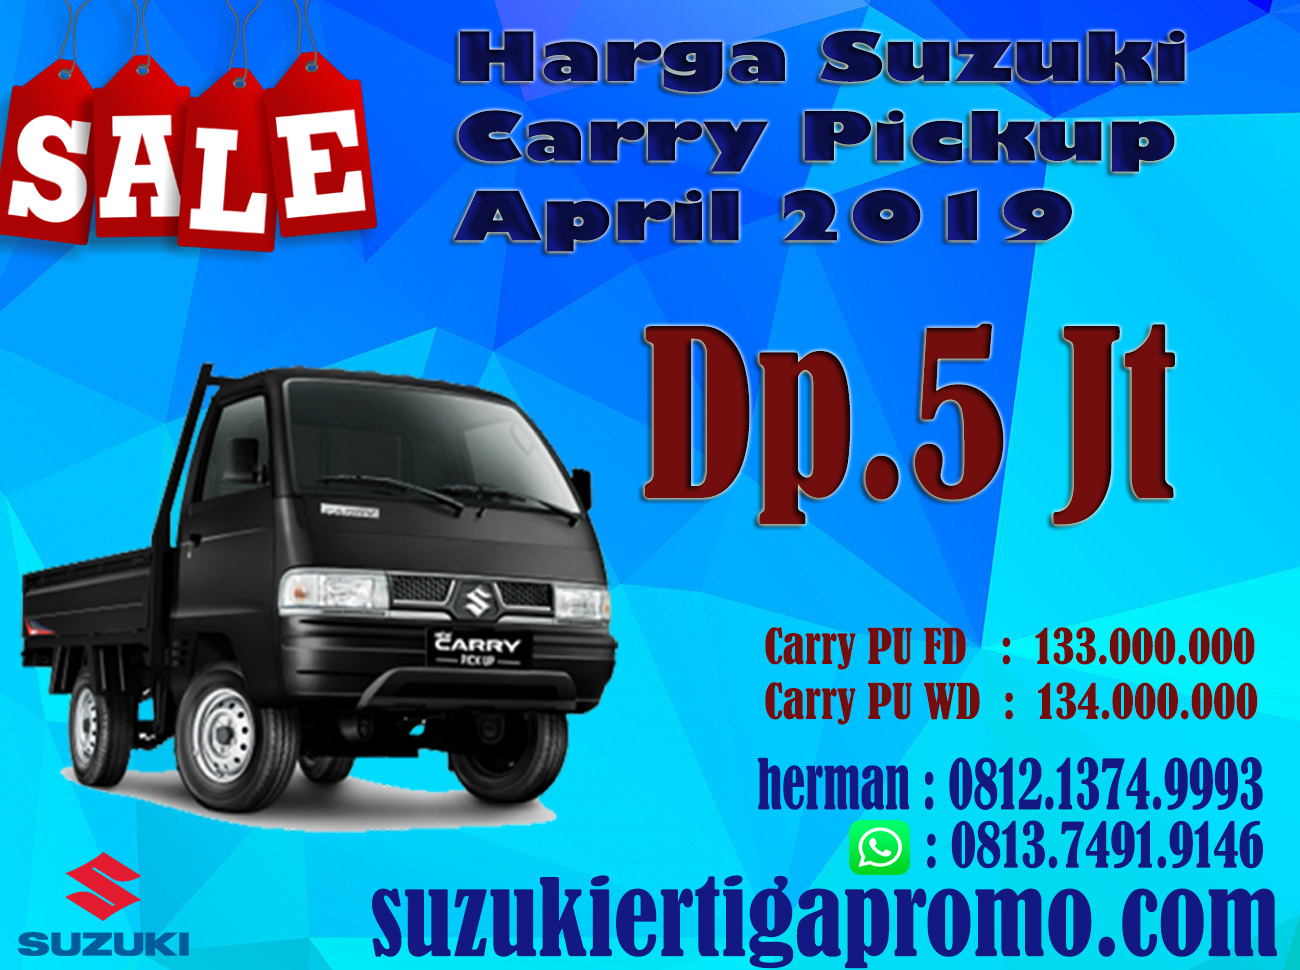 HARGA SUZUKI CARRY PICKUP TERBARU APRIL DP